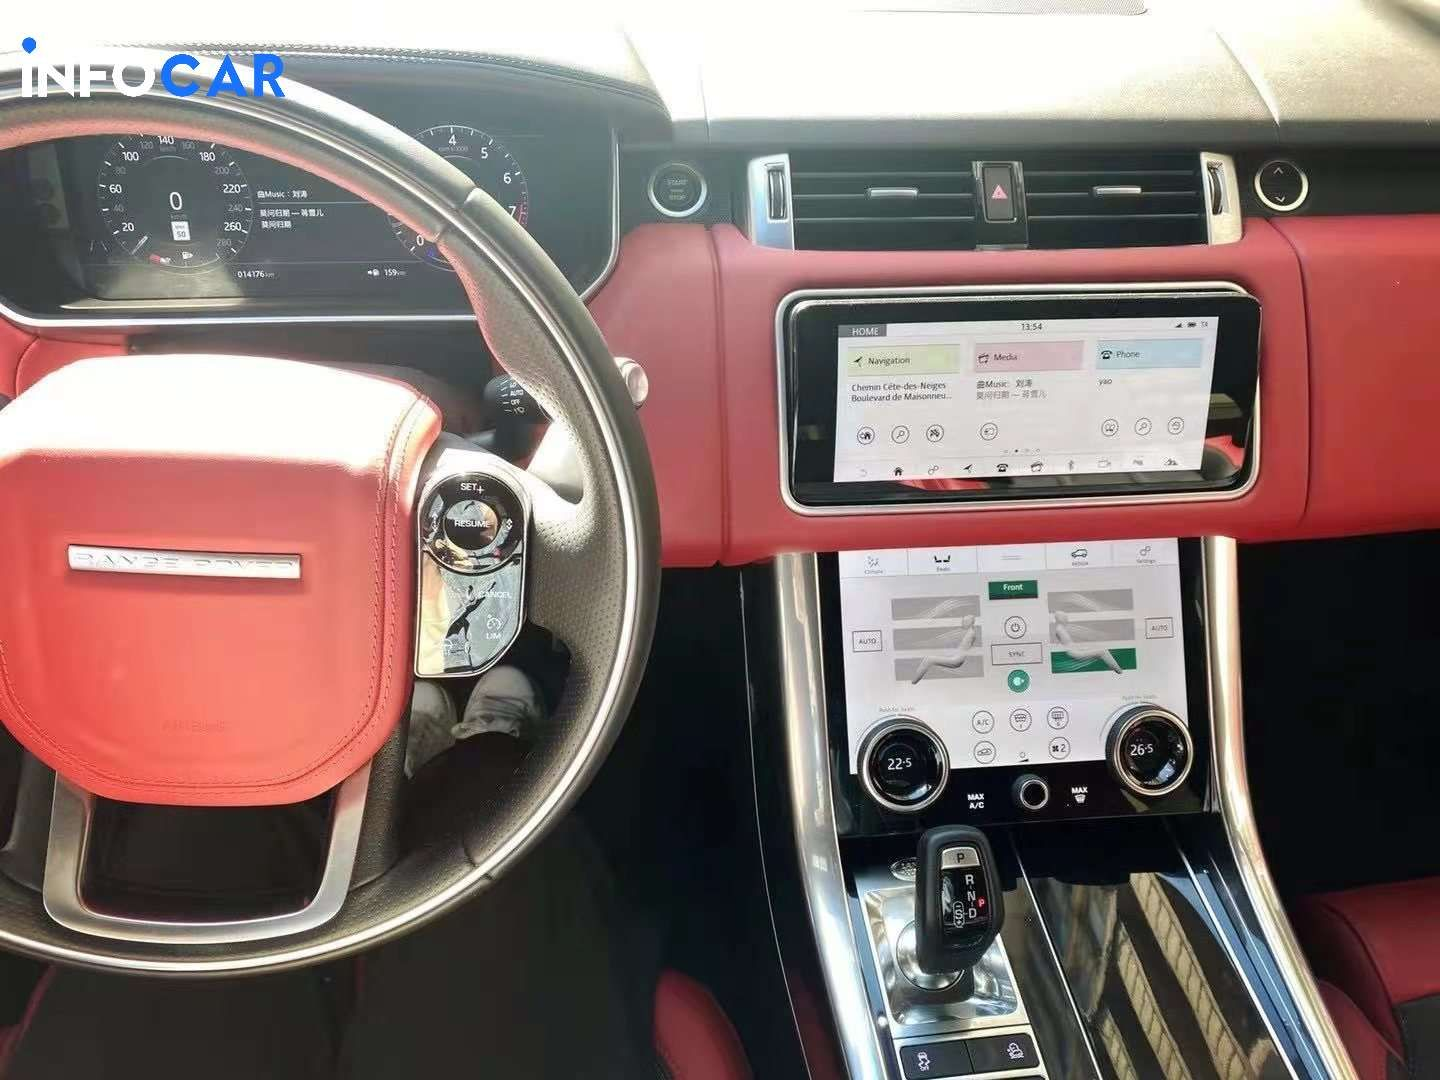 2019 Land Rover Range Rover Sport v8 autobiography  - INFOCAR - Toronto's Most Comprehensive New and Used Auto Trading Platform